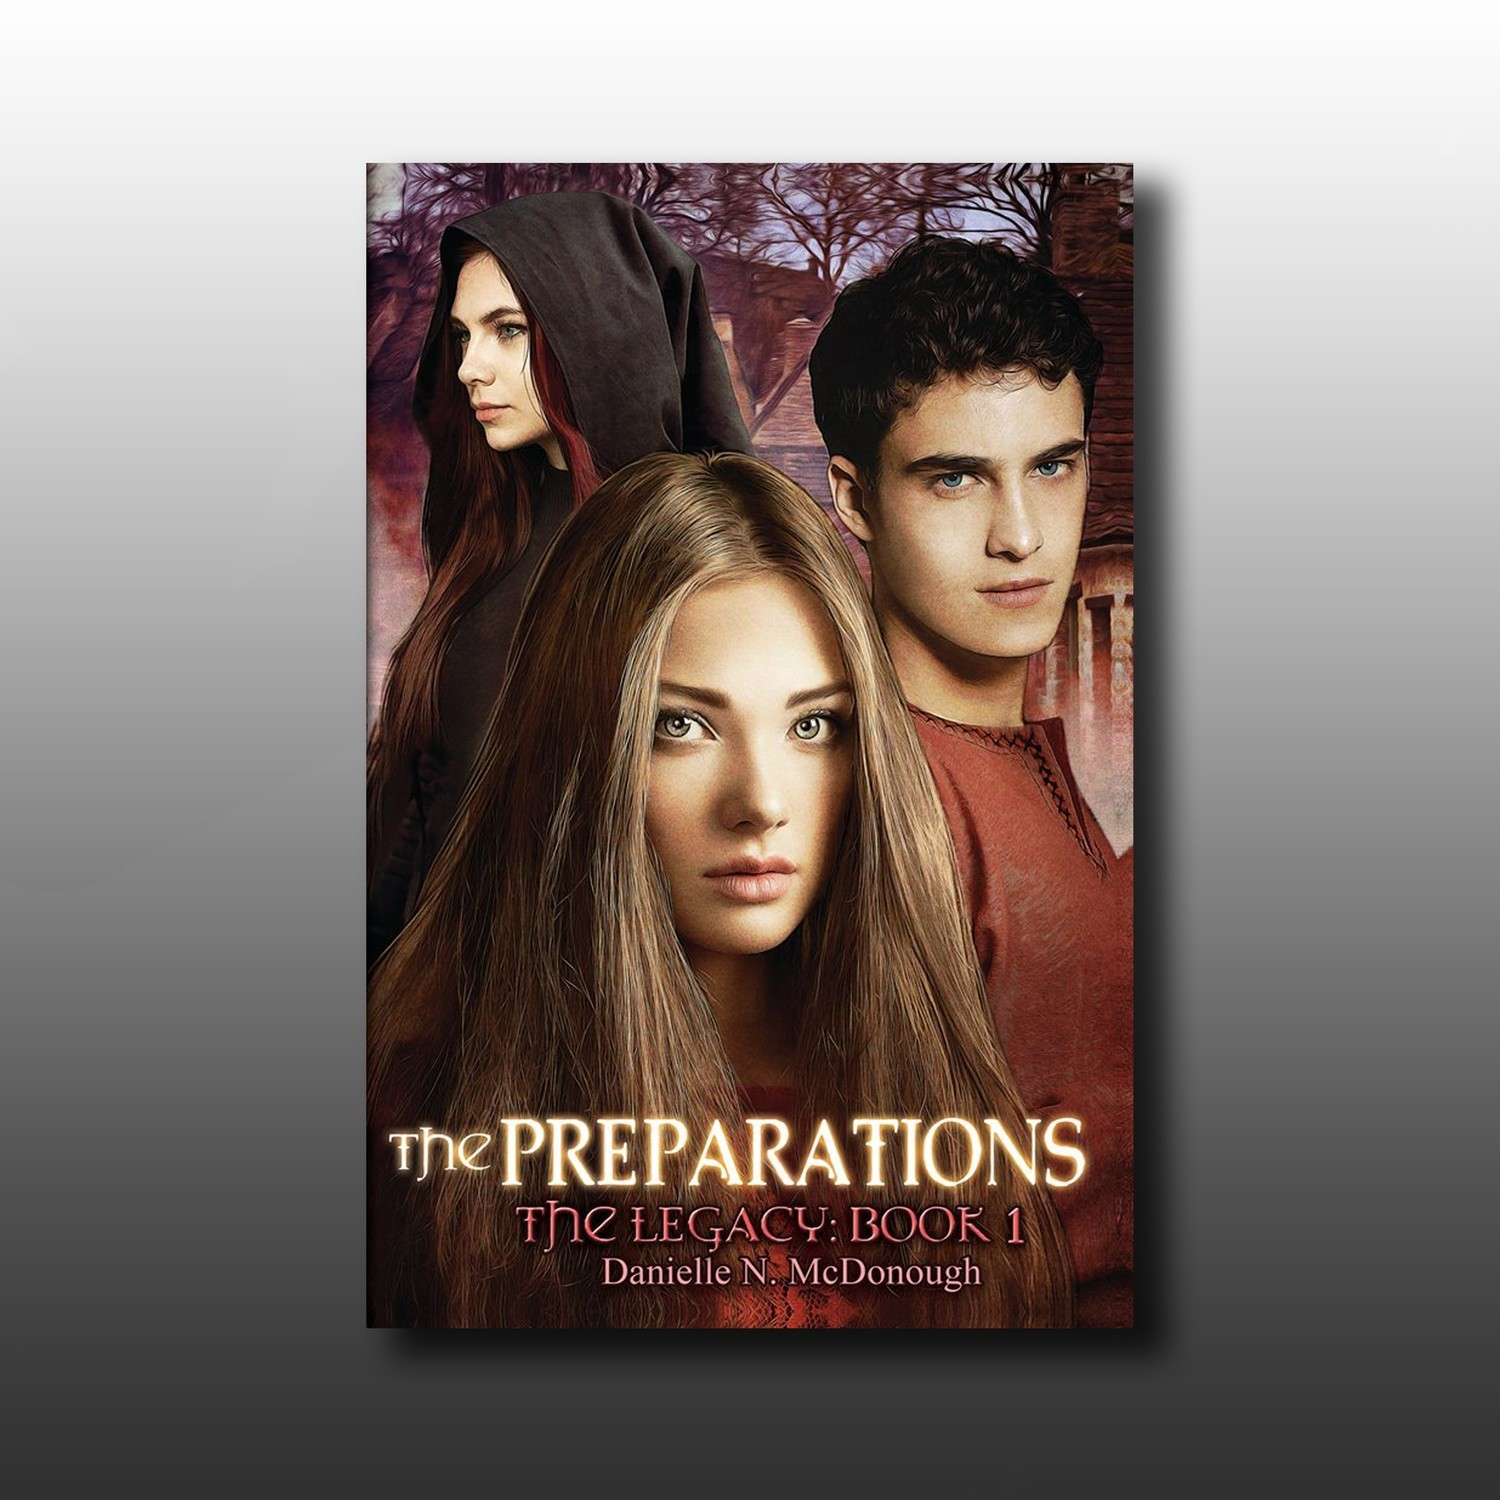 Book 1: The Preparations